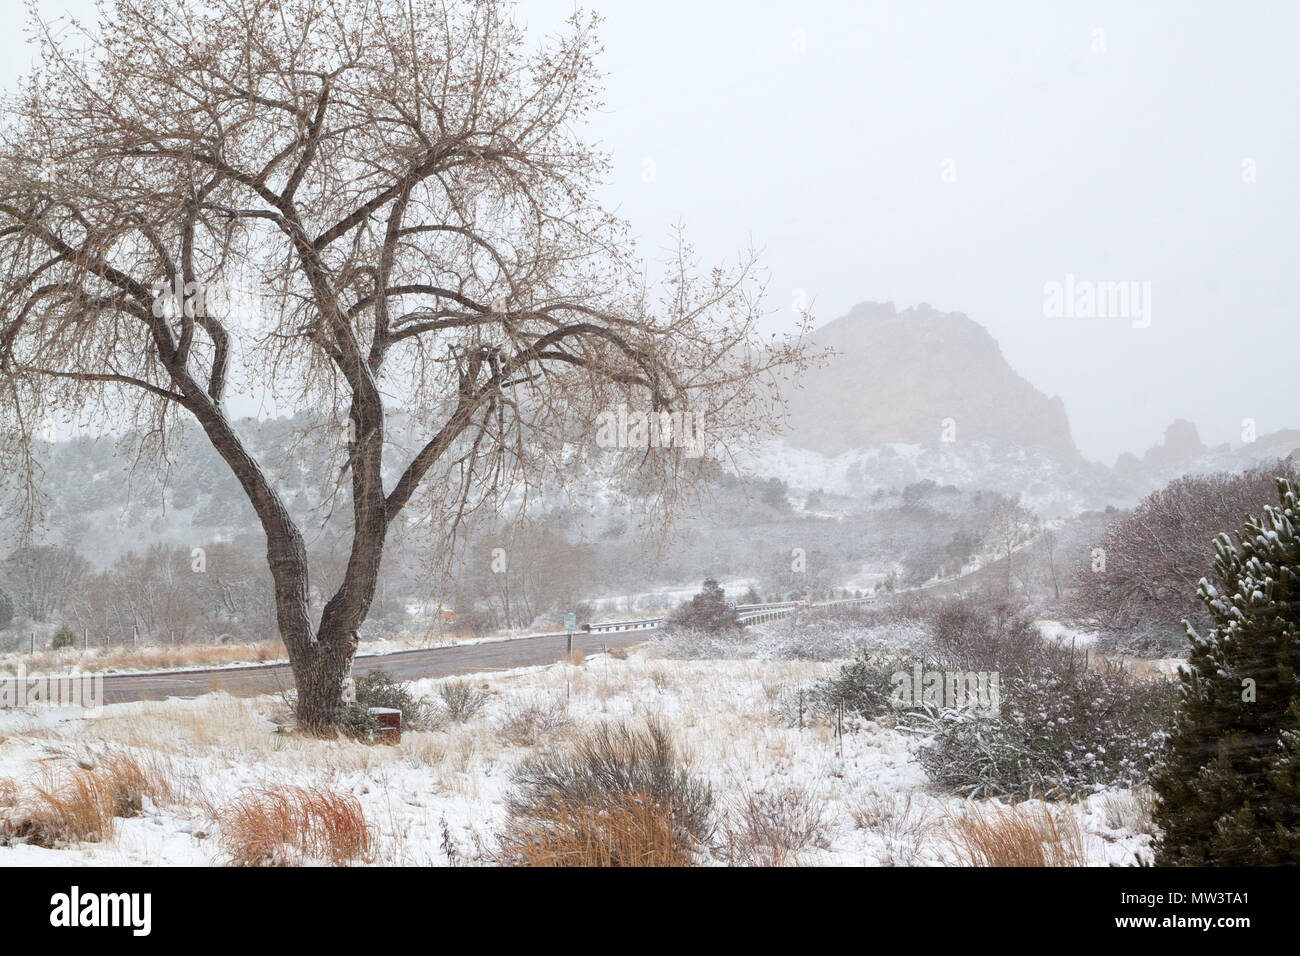 Garden of the Gods entrance during a heavy spring snowstorm - Stock Image